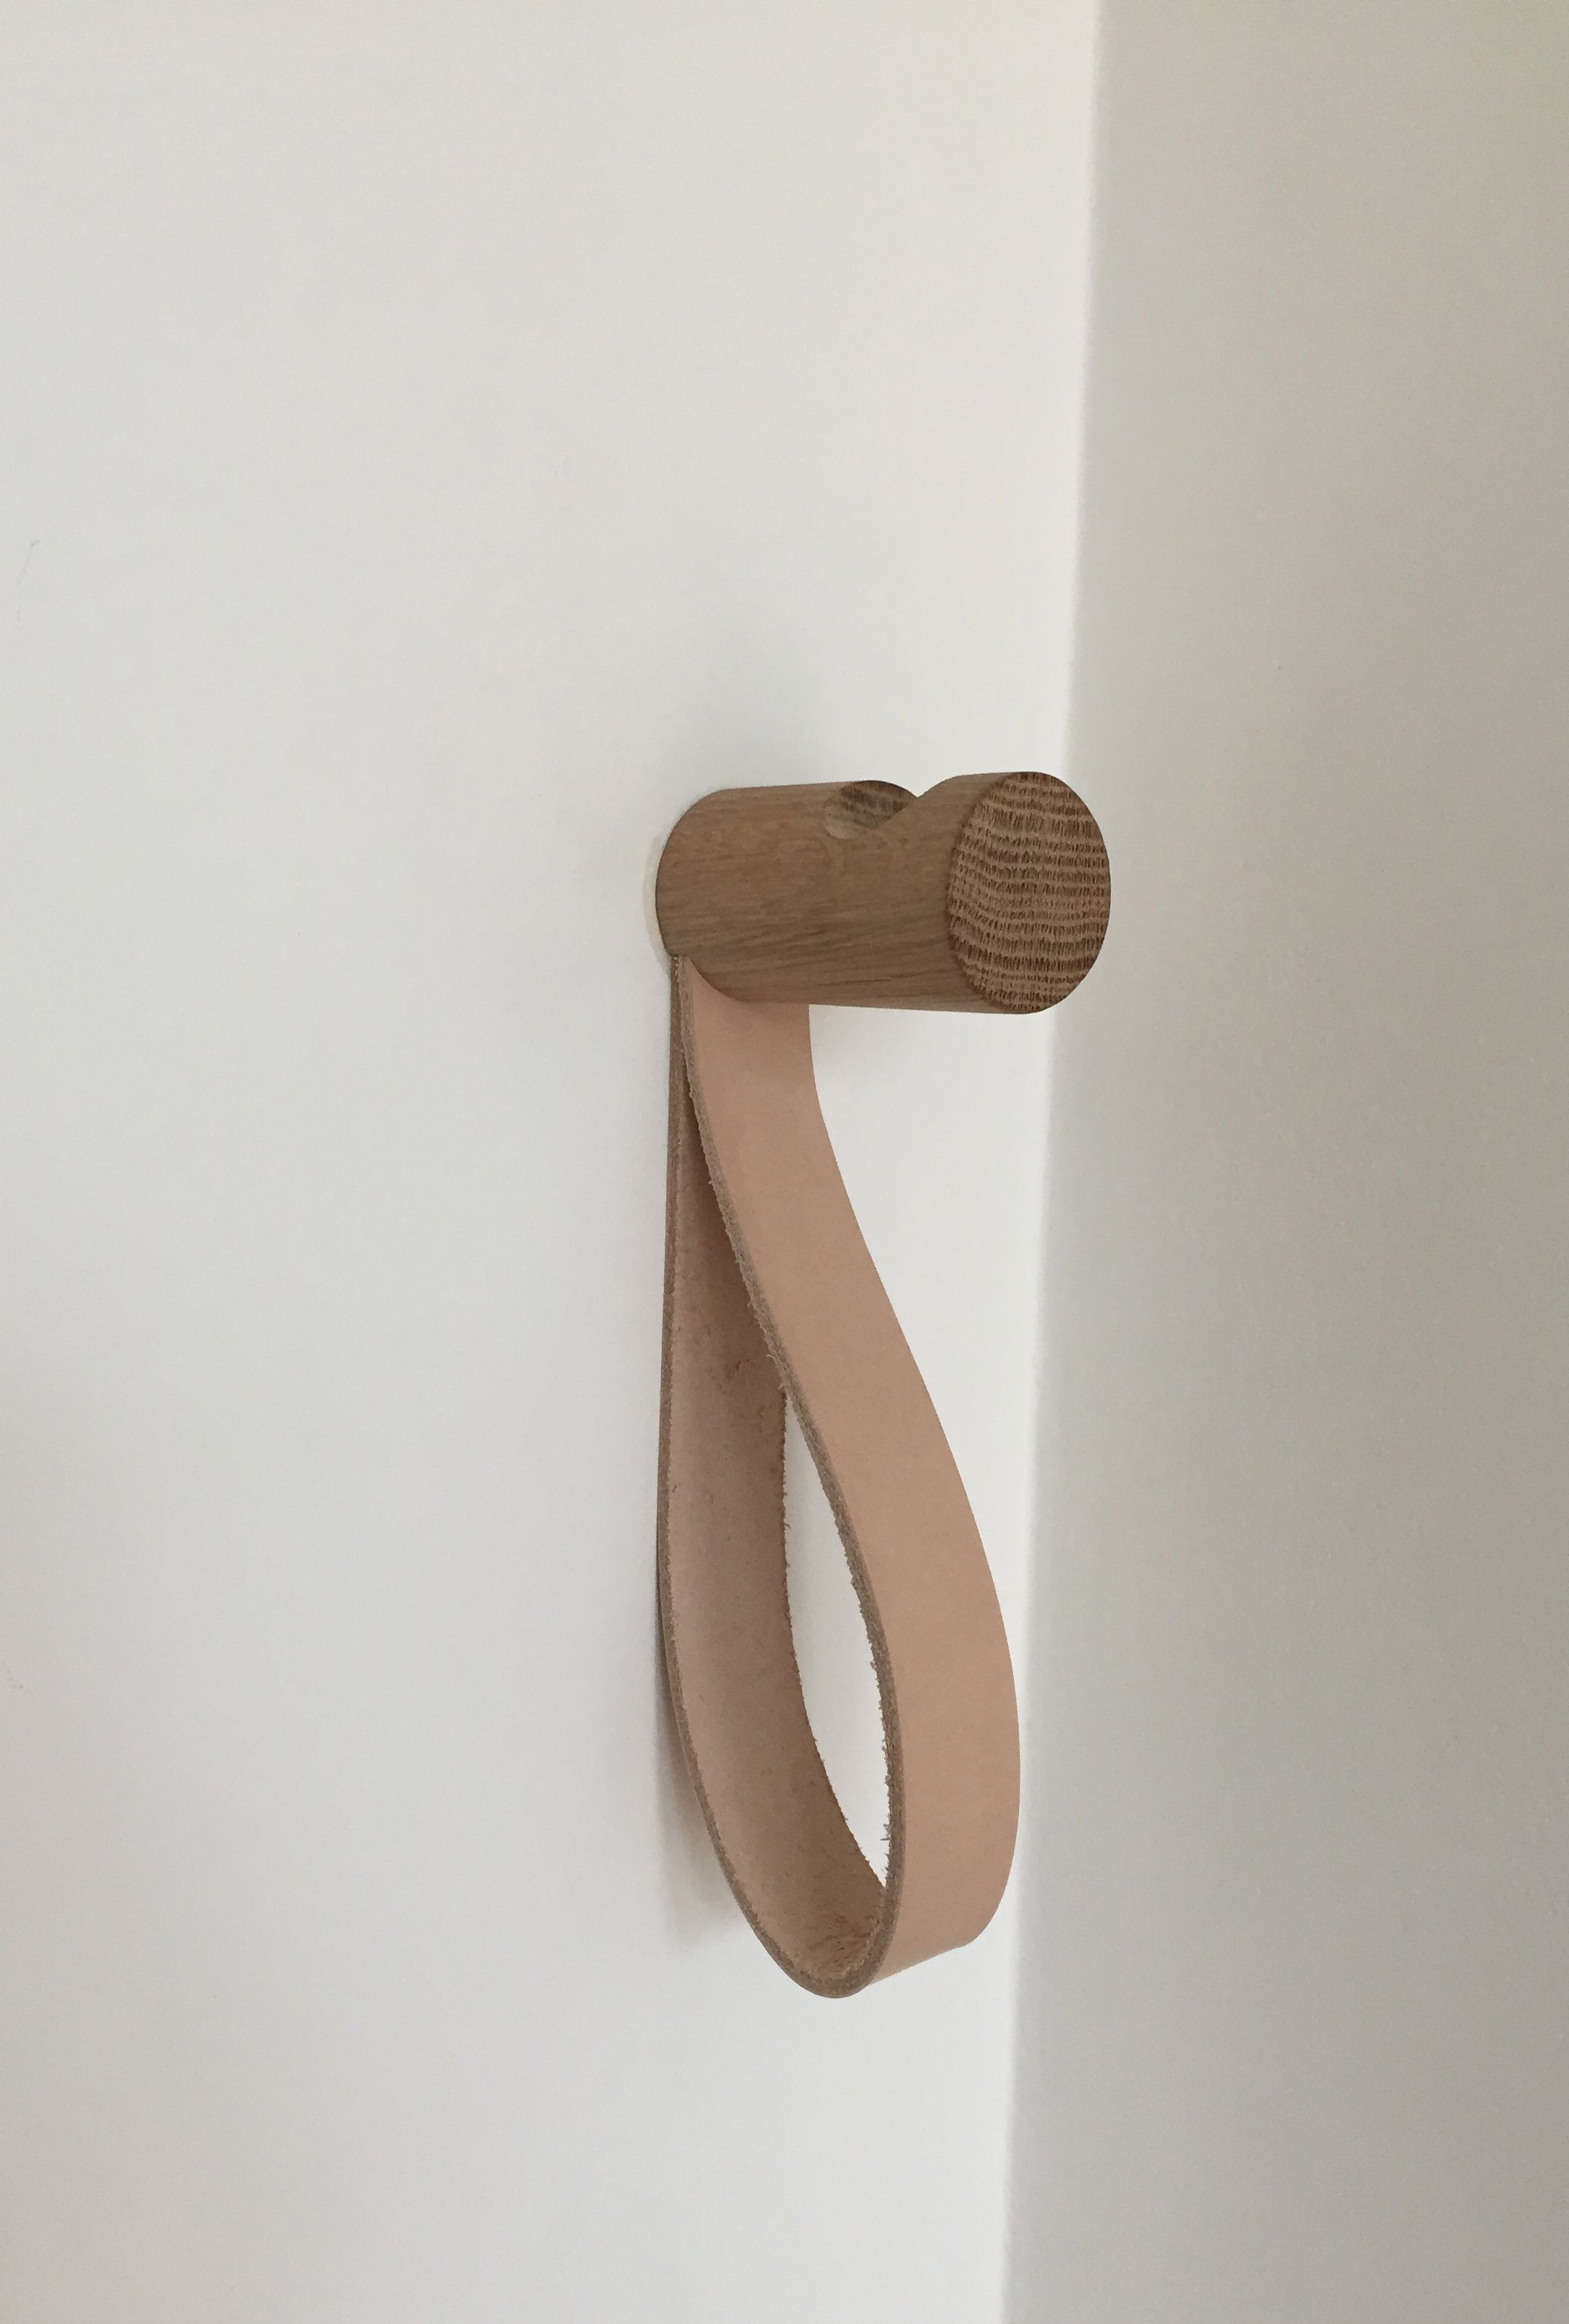 american oak wall hook with natural leather loop | Coat hooks ...